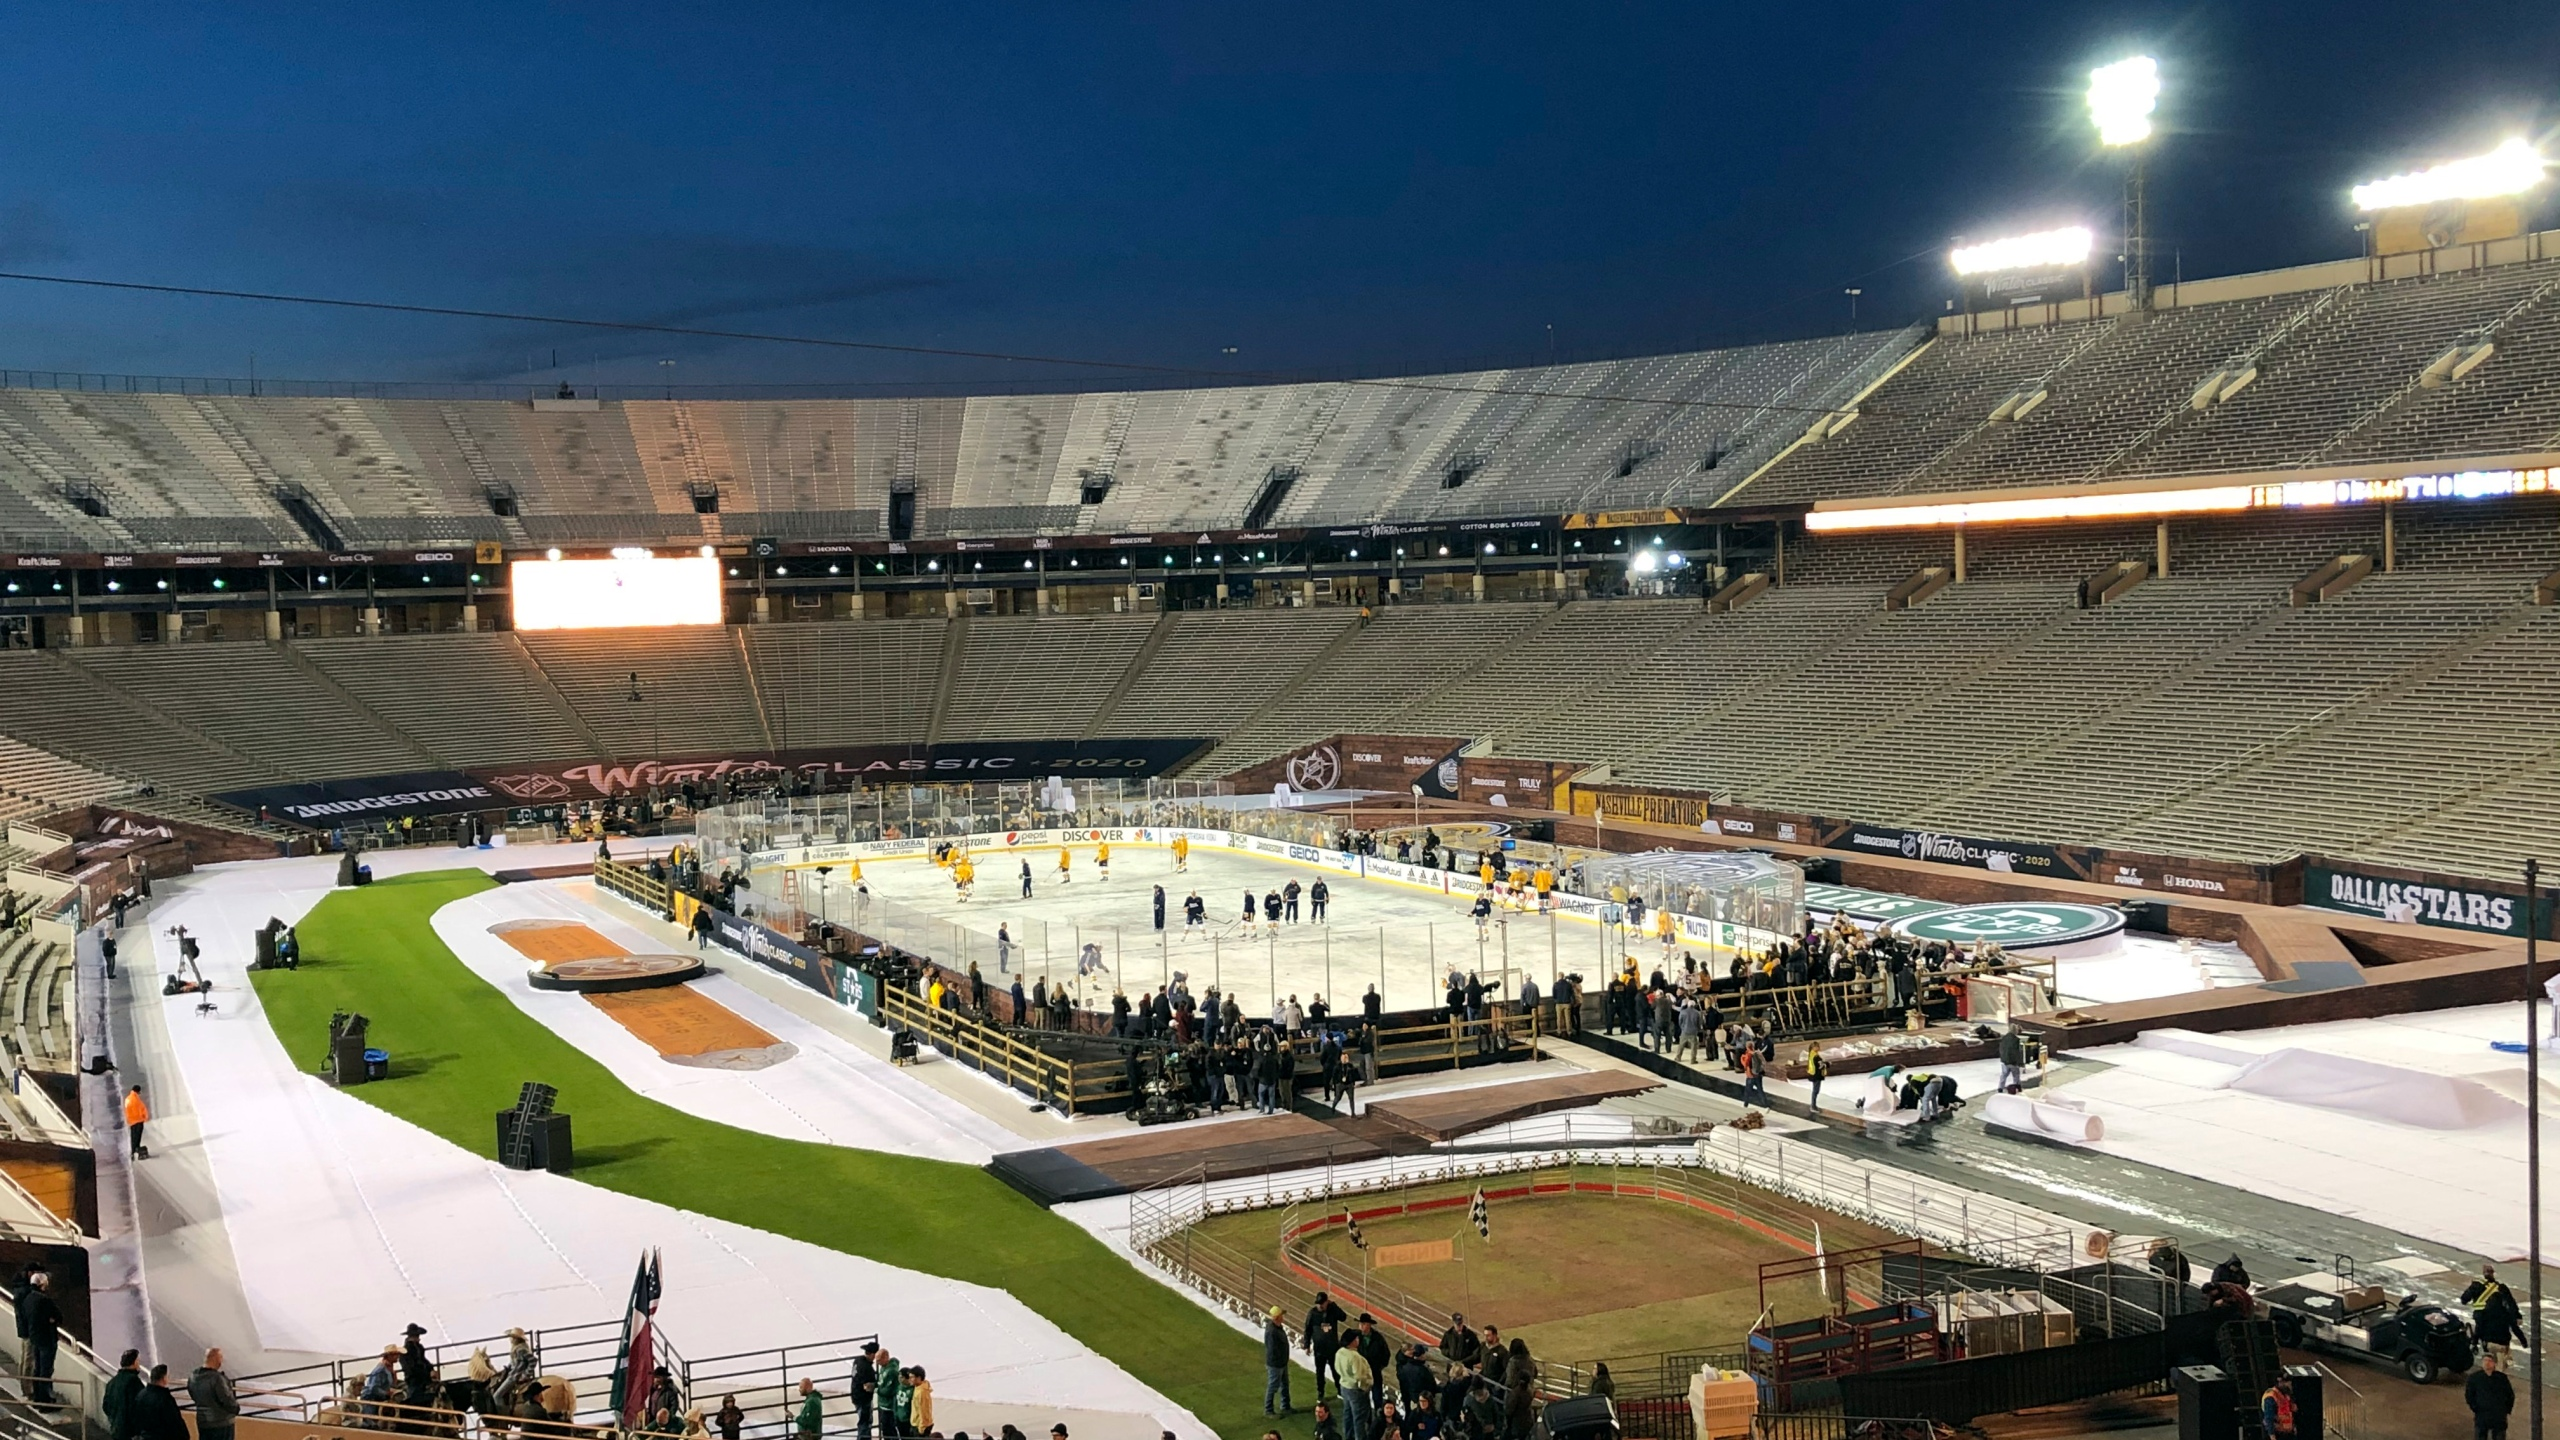 Winter Classic-Cotton Bowl Hockey